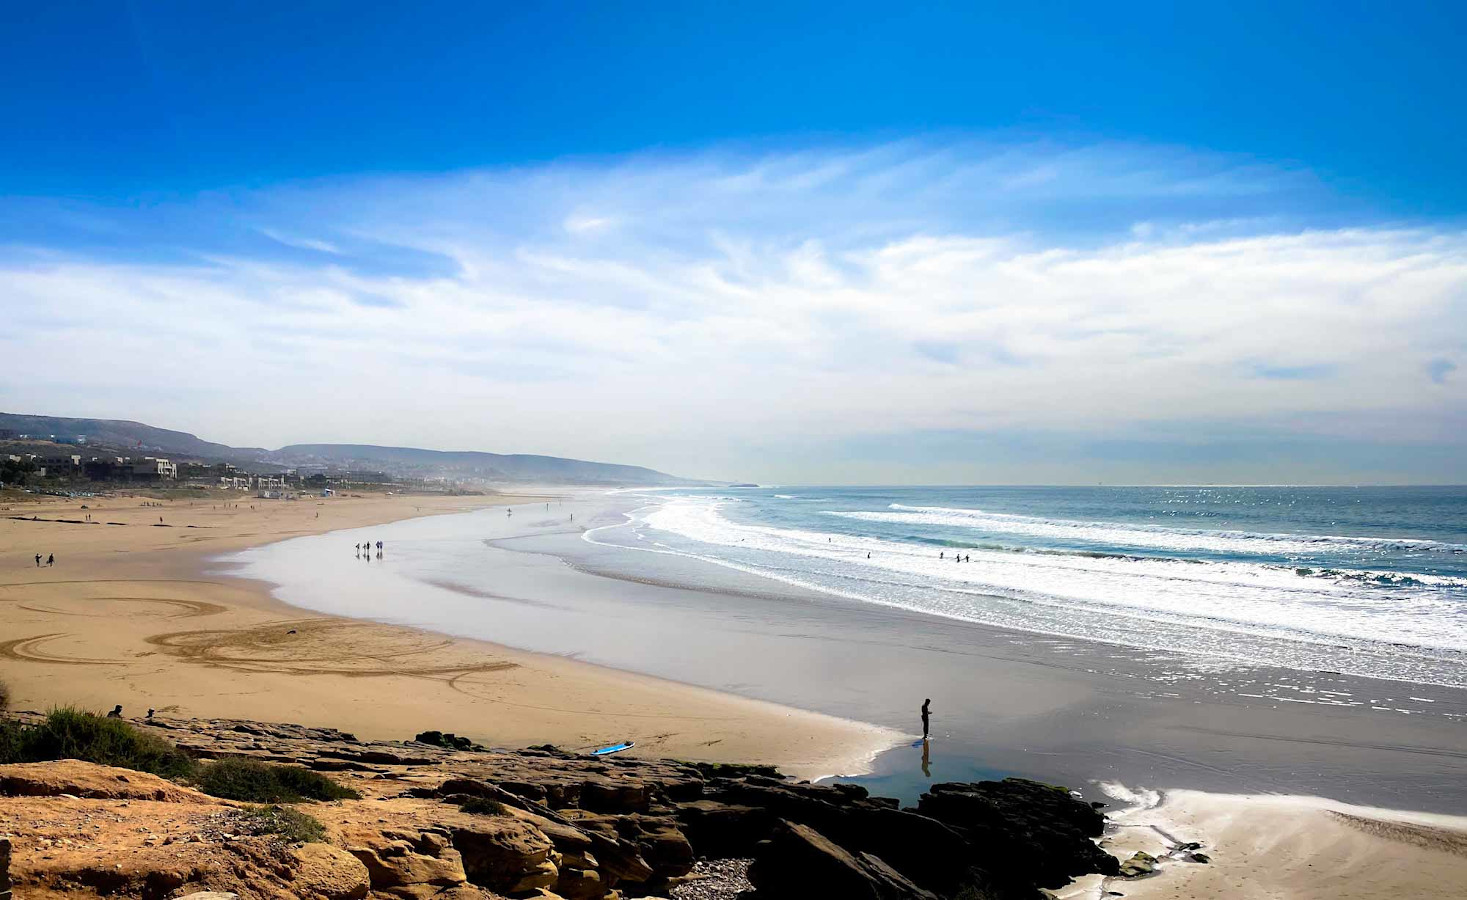 Check out Taghazout beach, one of the best places to visit on your Morocco one week trip